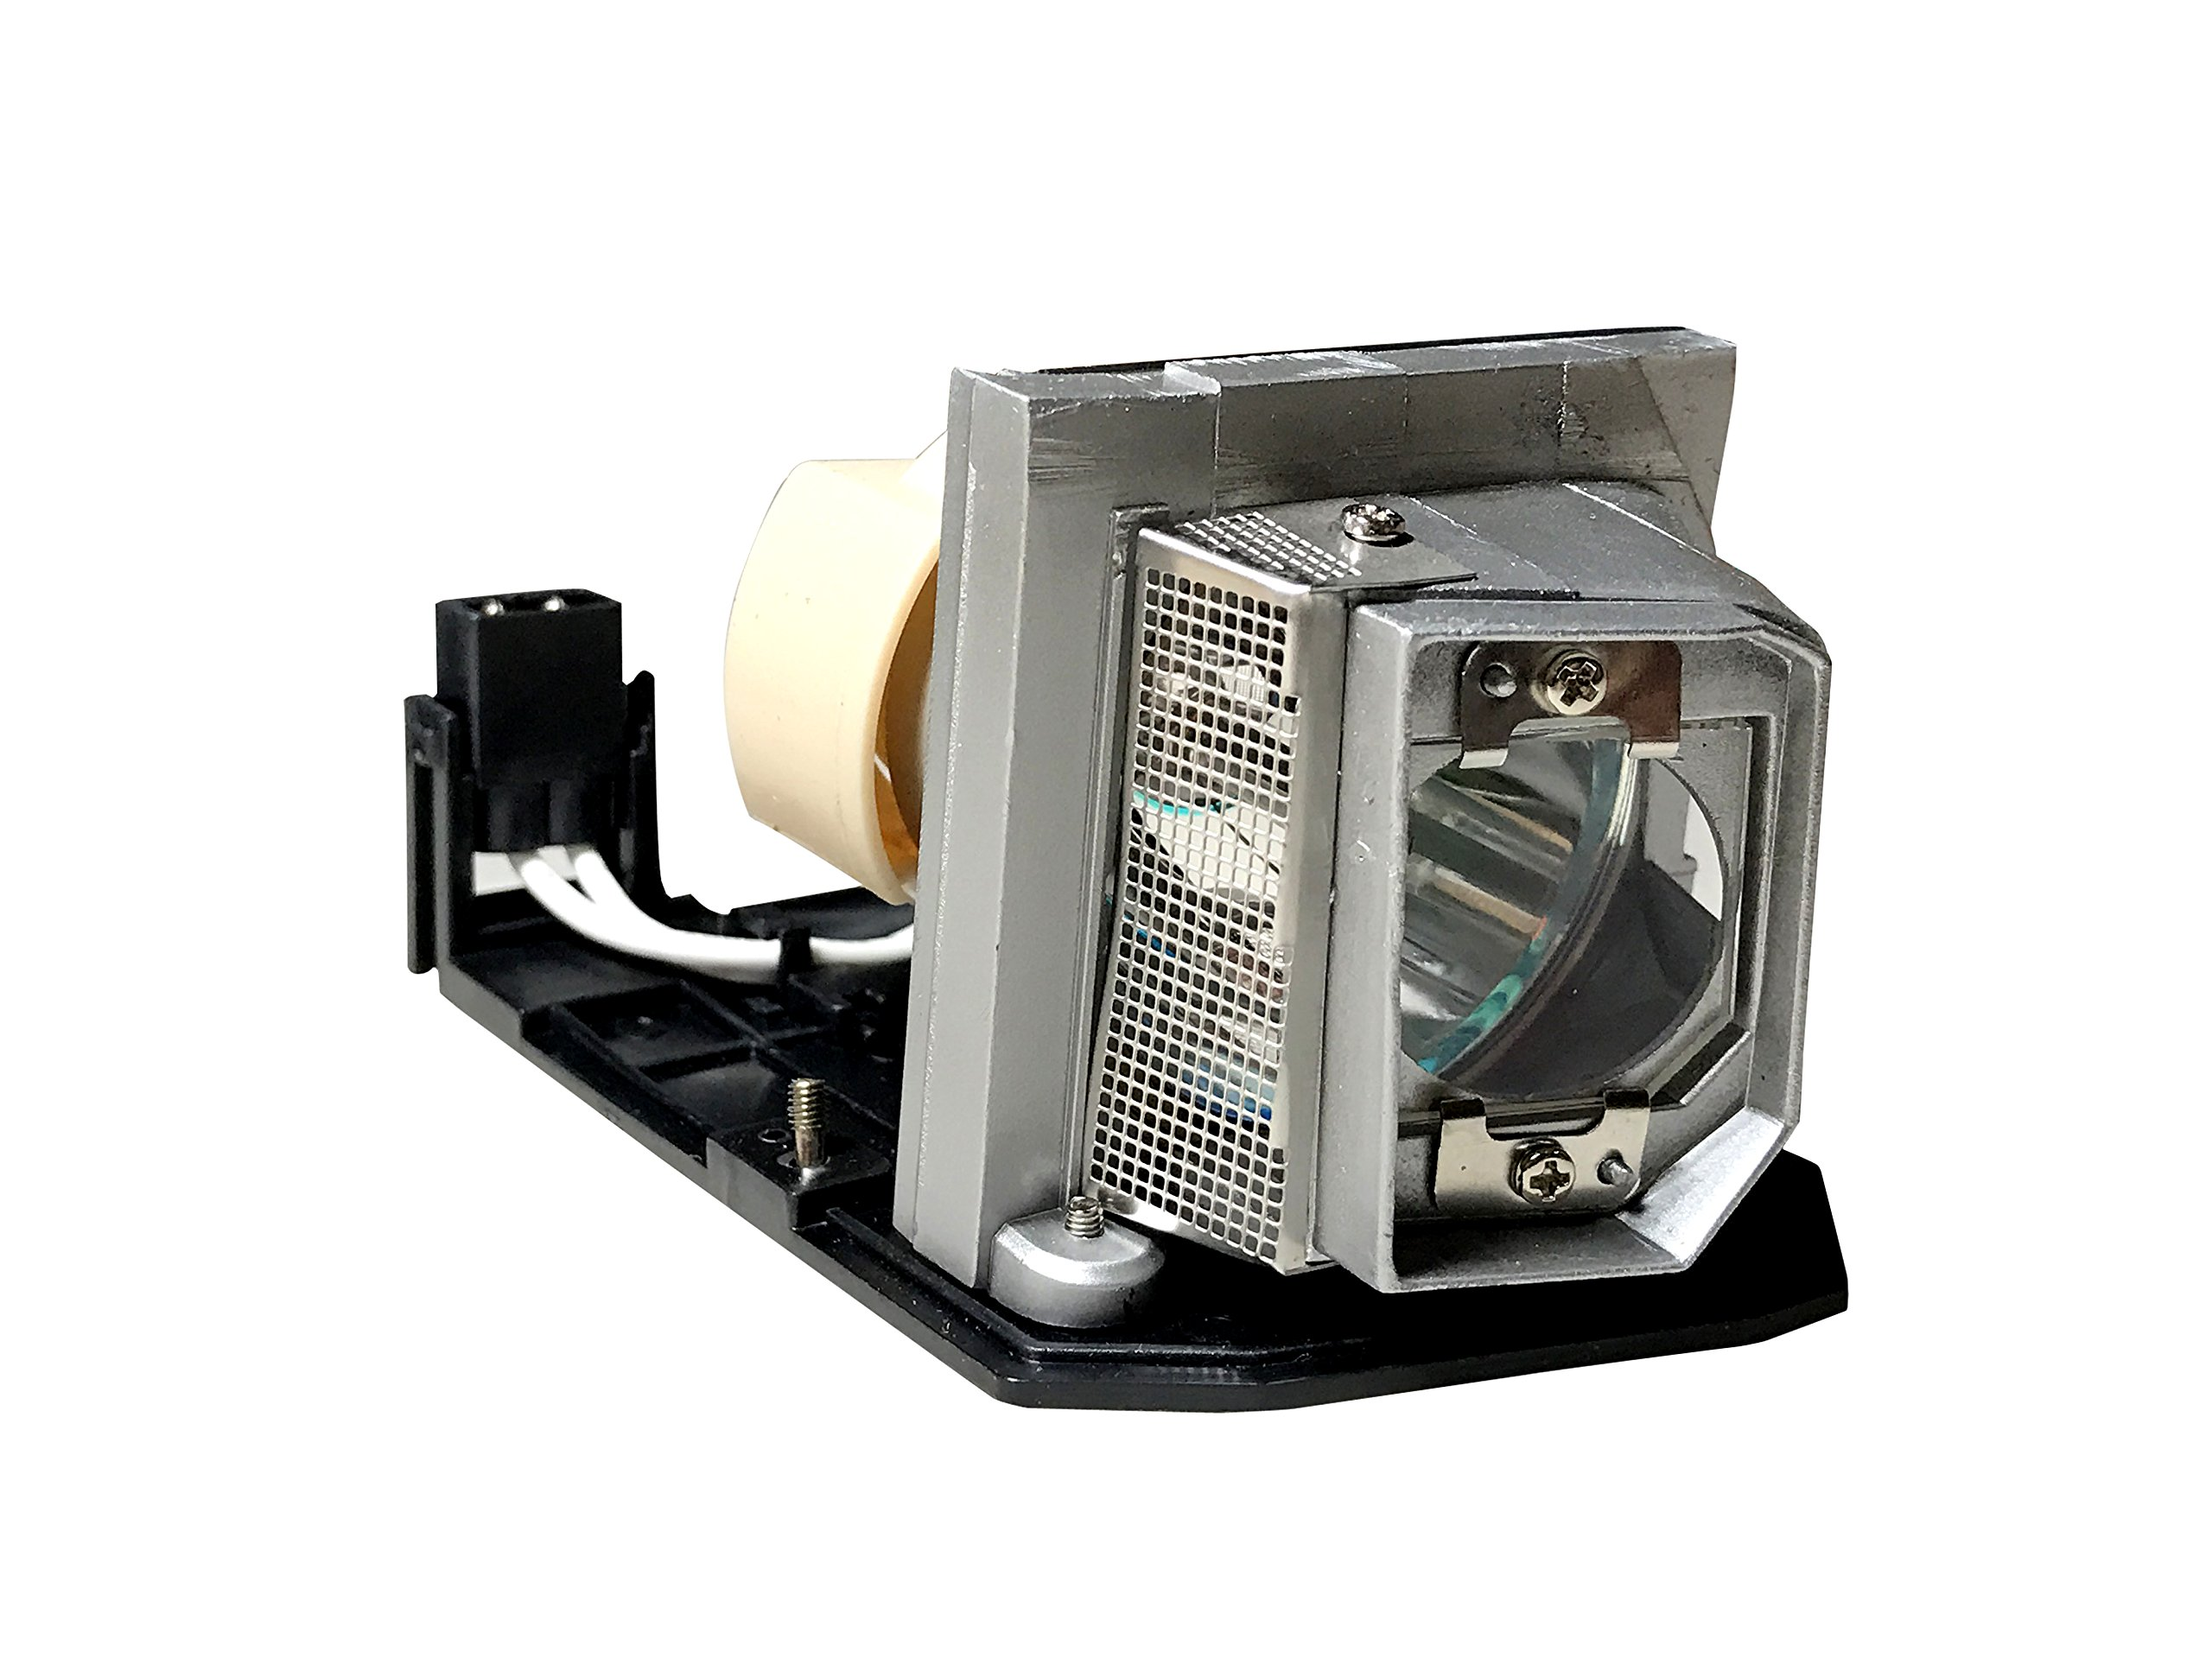 ORILIGHTS BL-FP230D Replacement Lamp A+ Level Filament For Optoma HD20, HD22, HD180, TH1020, TX612 with Housing